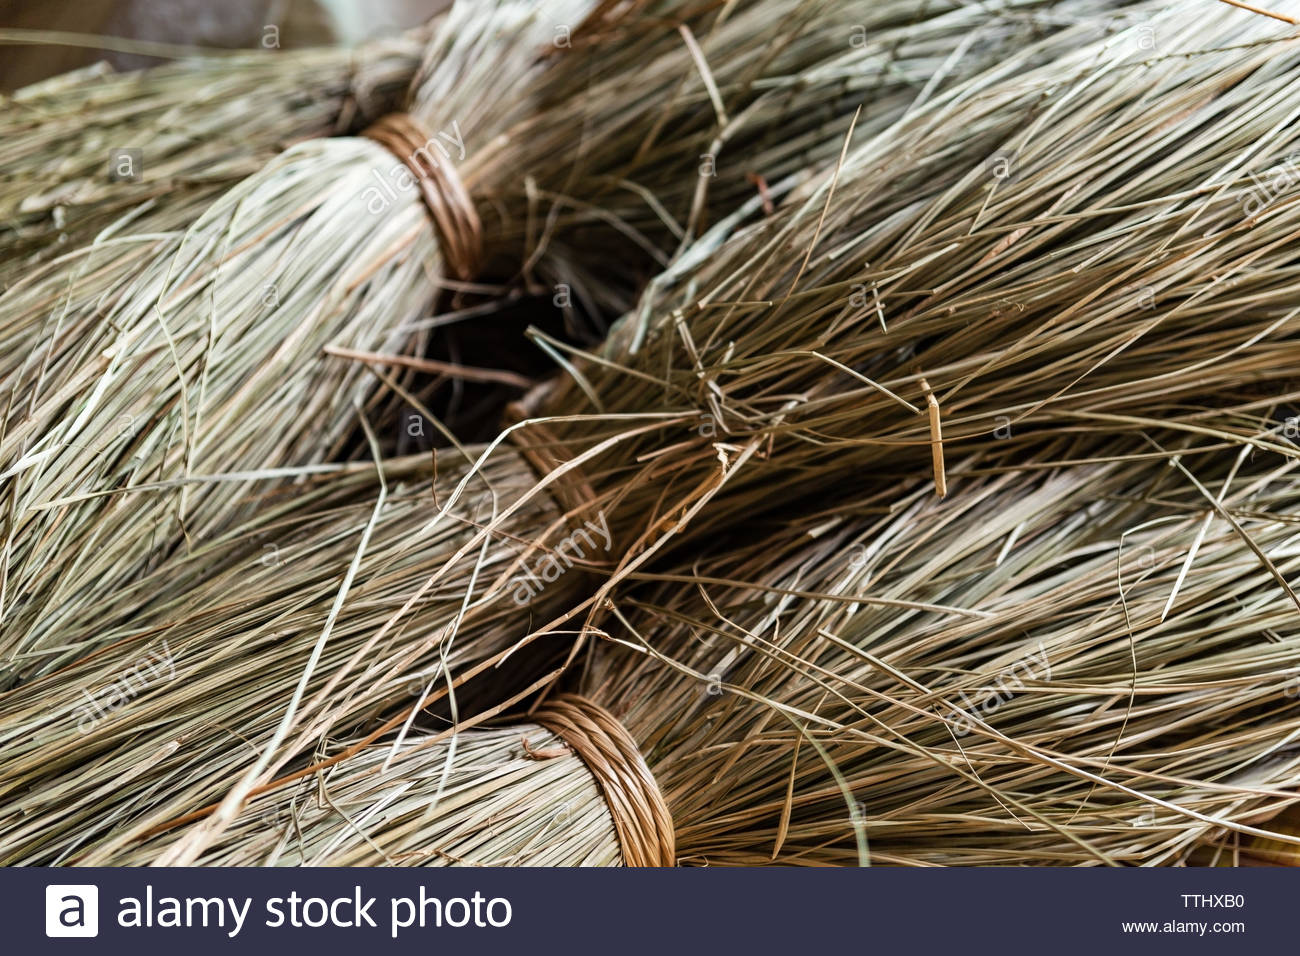 Close-up on sacks of non-dyed straws for sedge mat weaving in the small village of Ben Tre in the Mekong delta region, Vietnam. Horizontal view. - Stock Image